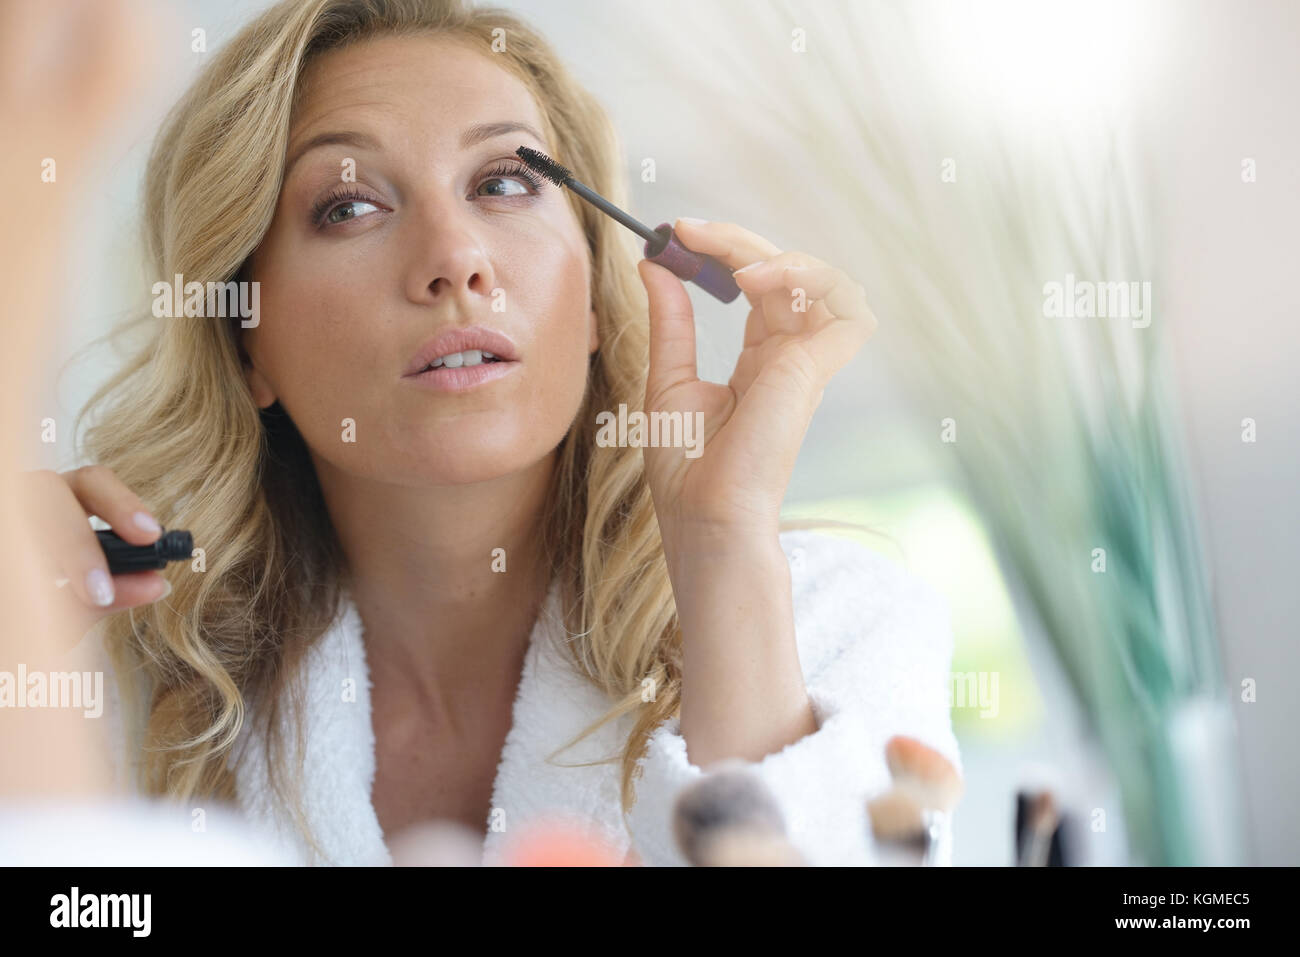 Portrait of beautiful blond woman applying mascara in front of mirror - Stock Image